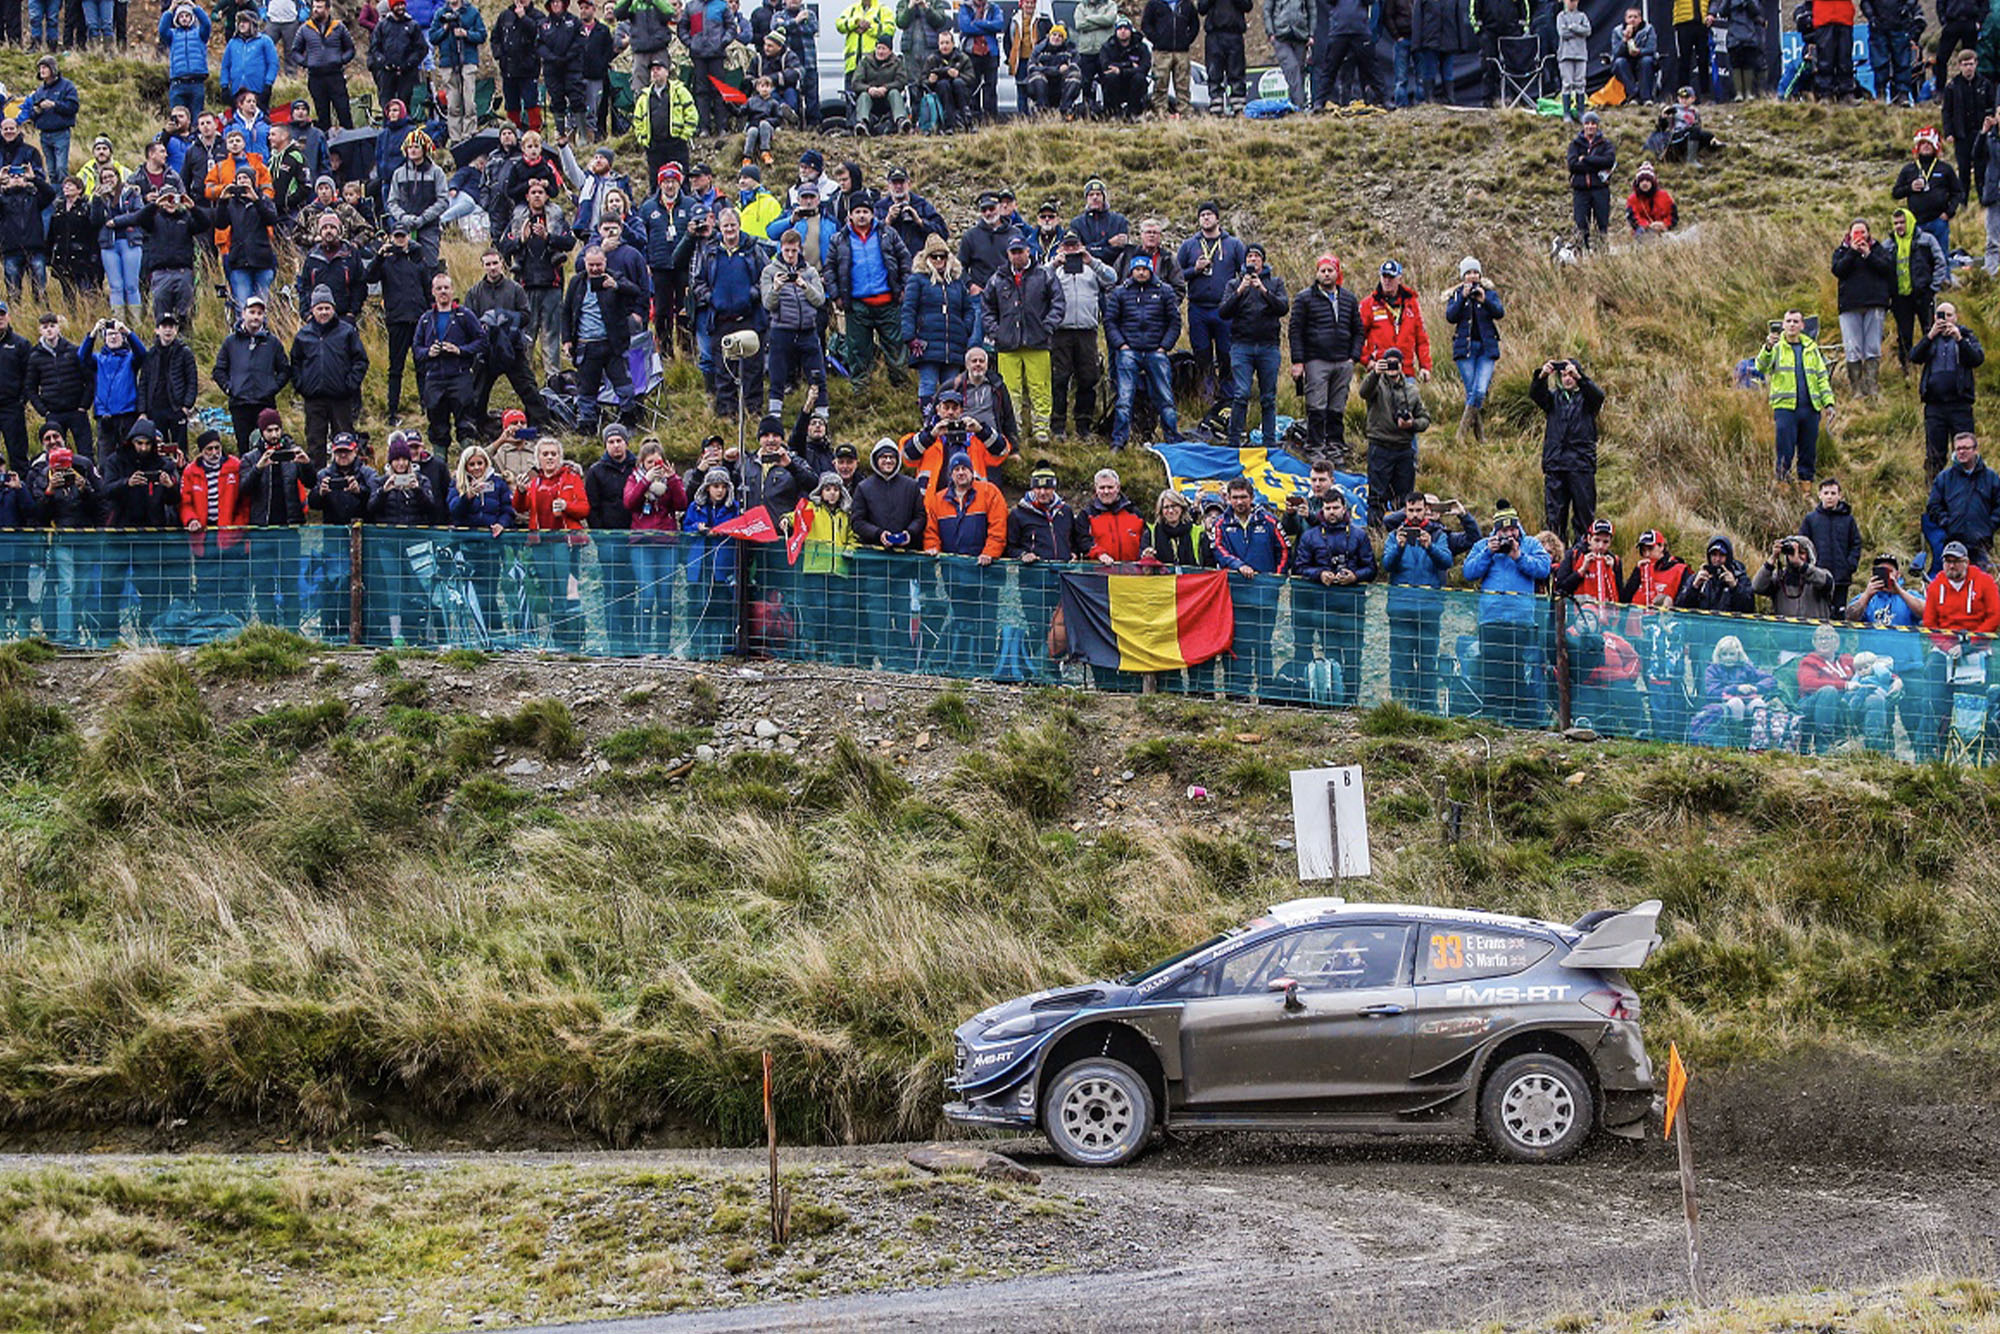 2020 Wales Rally GB cancelled over Covid uncertainty